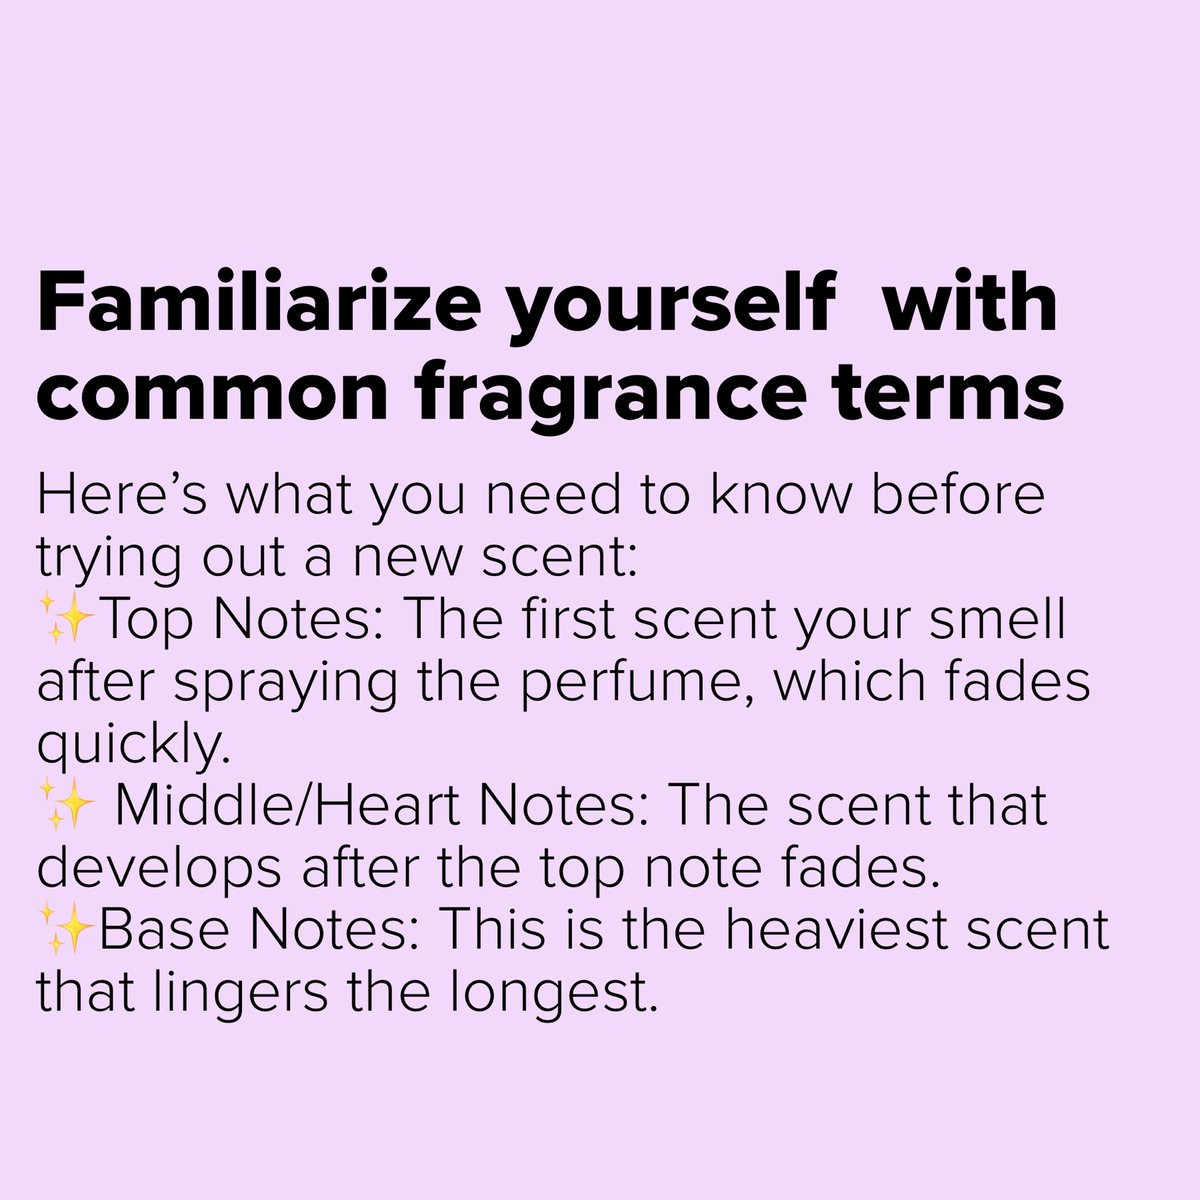 Always look up the notes before trying out a new fragrance! #Scentbird https://t.co/PKL6aCDa1U